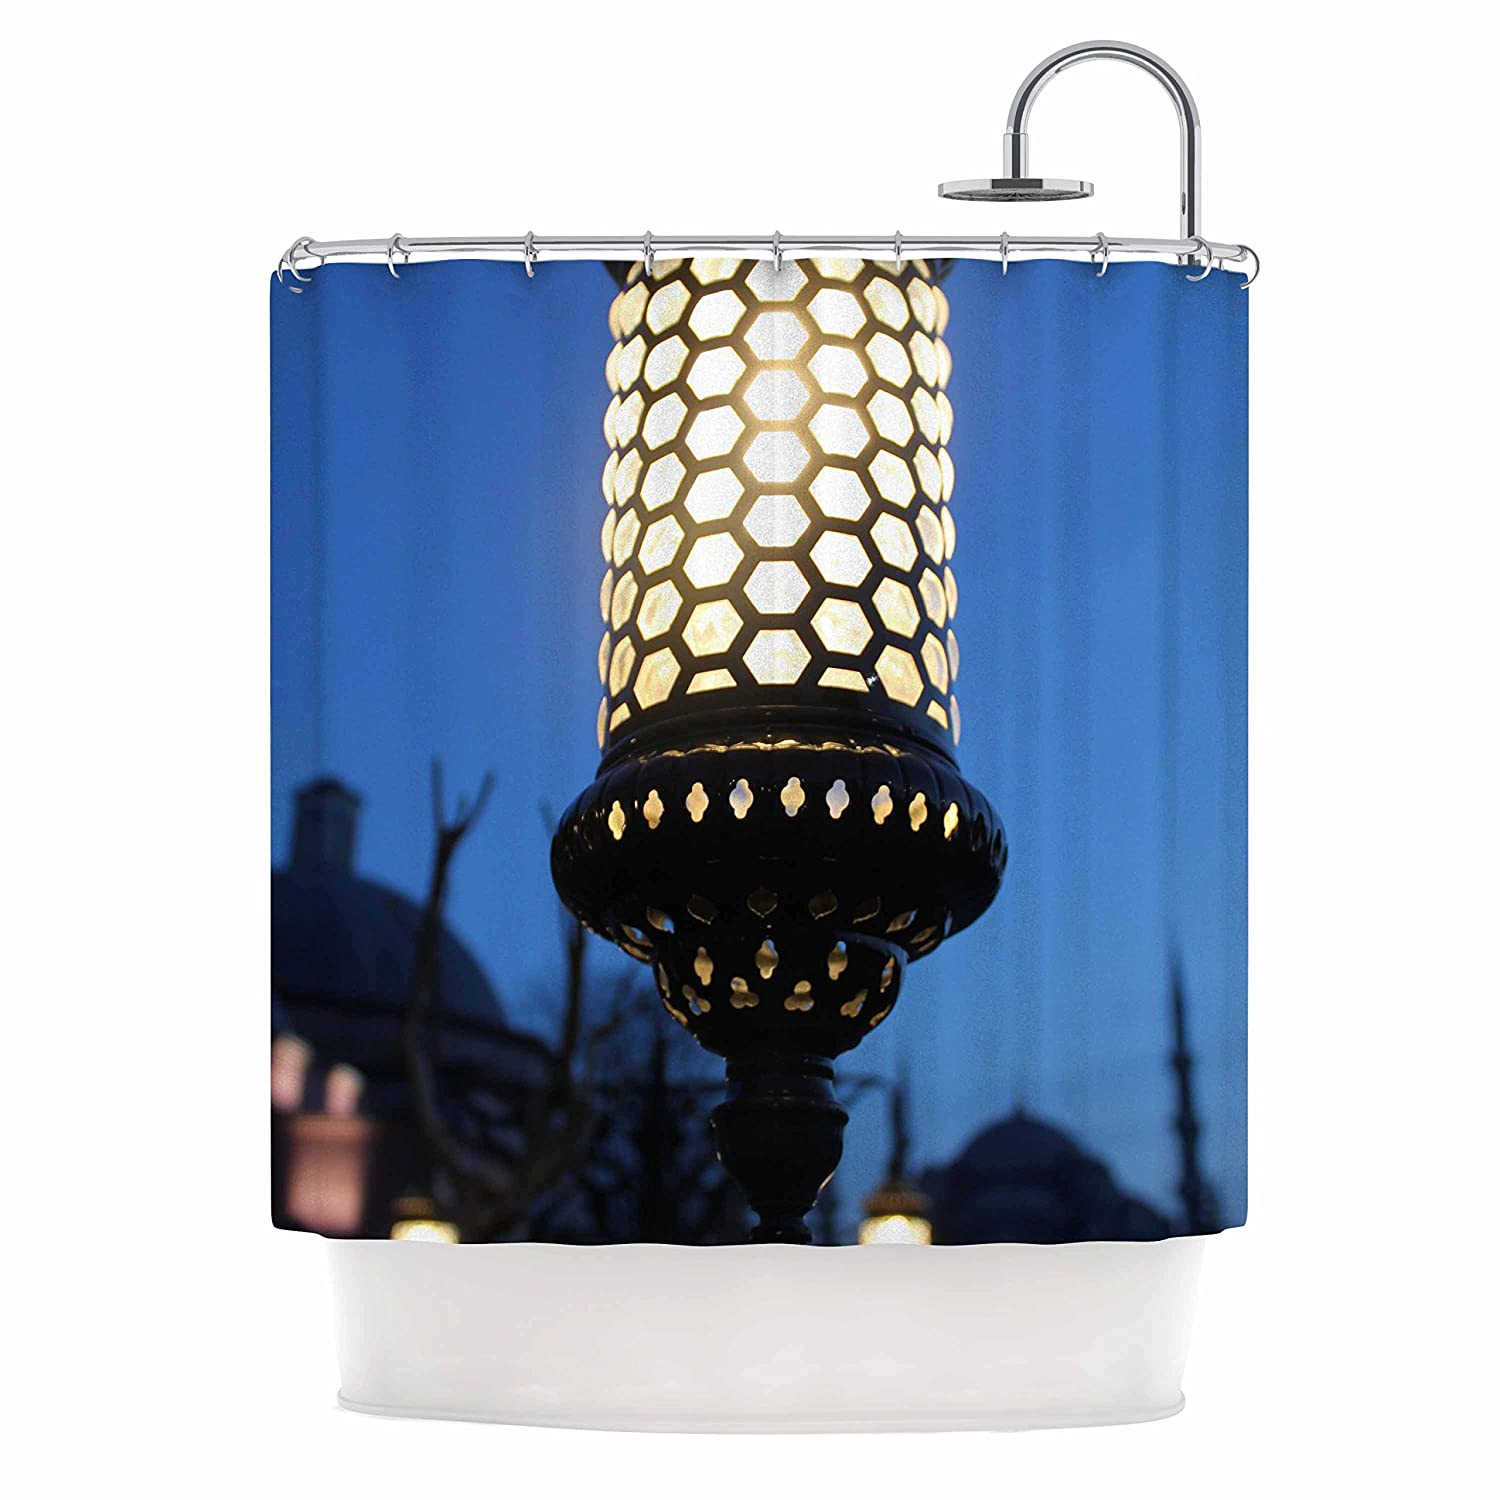 Kess InHouse Theresa Giolzetti The Light of The Roman Empire Black Gold Shower Curtain, 69 by 70'